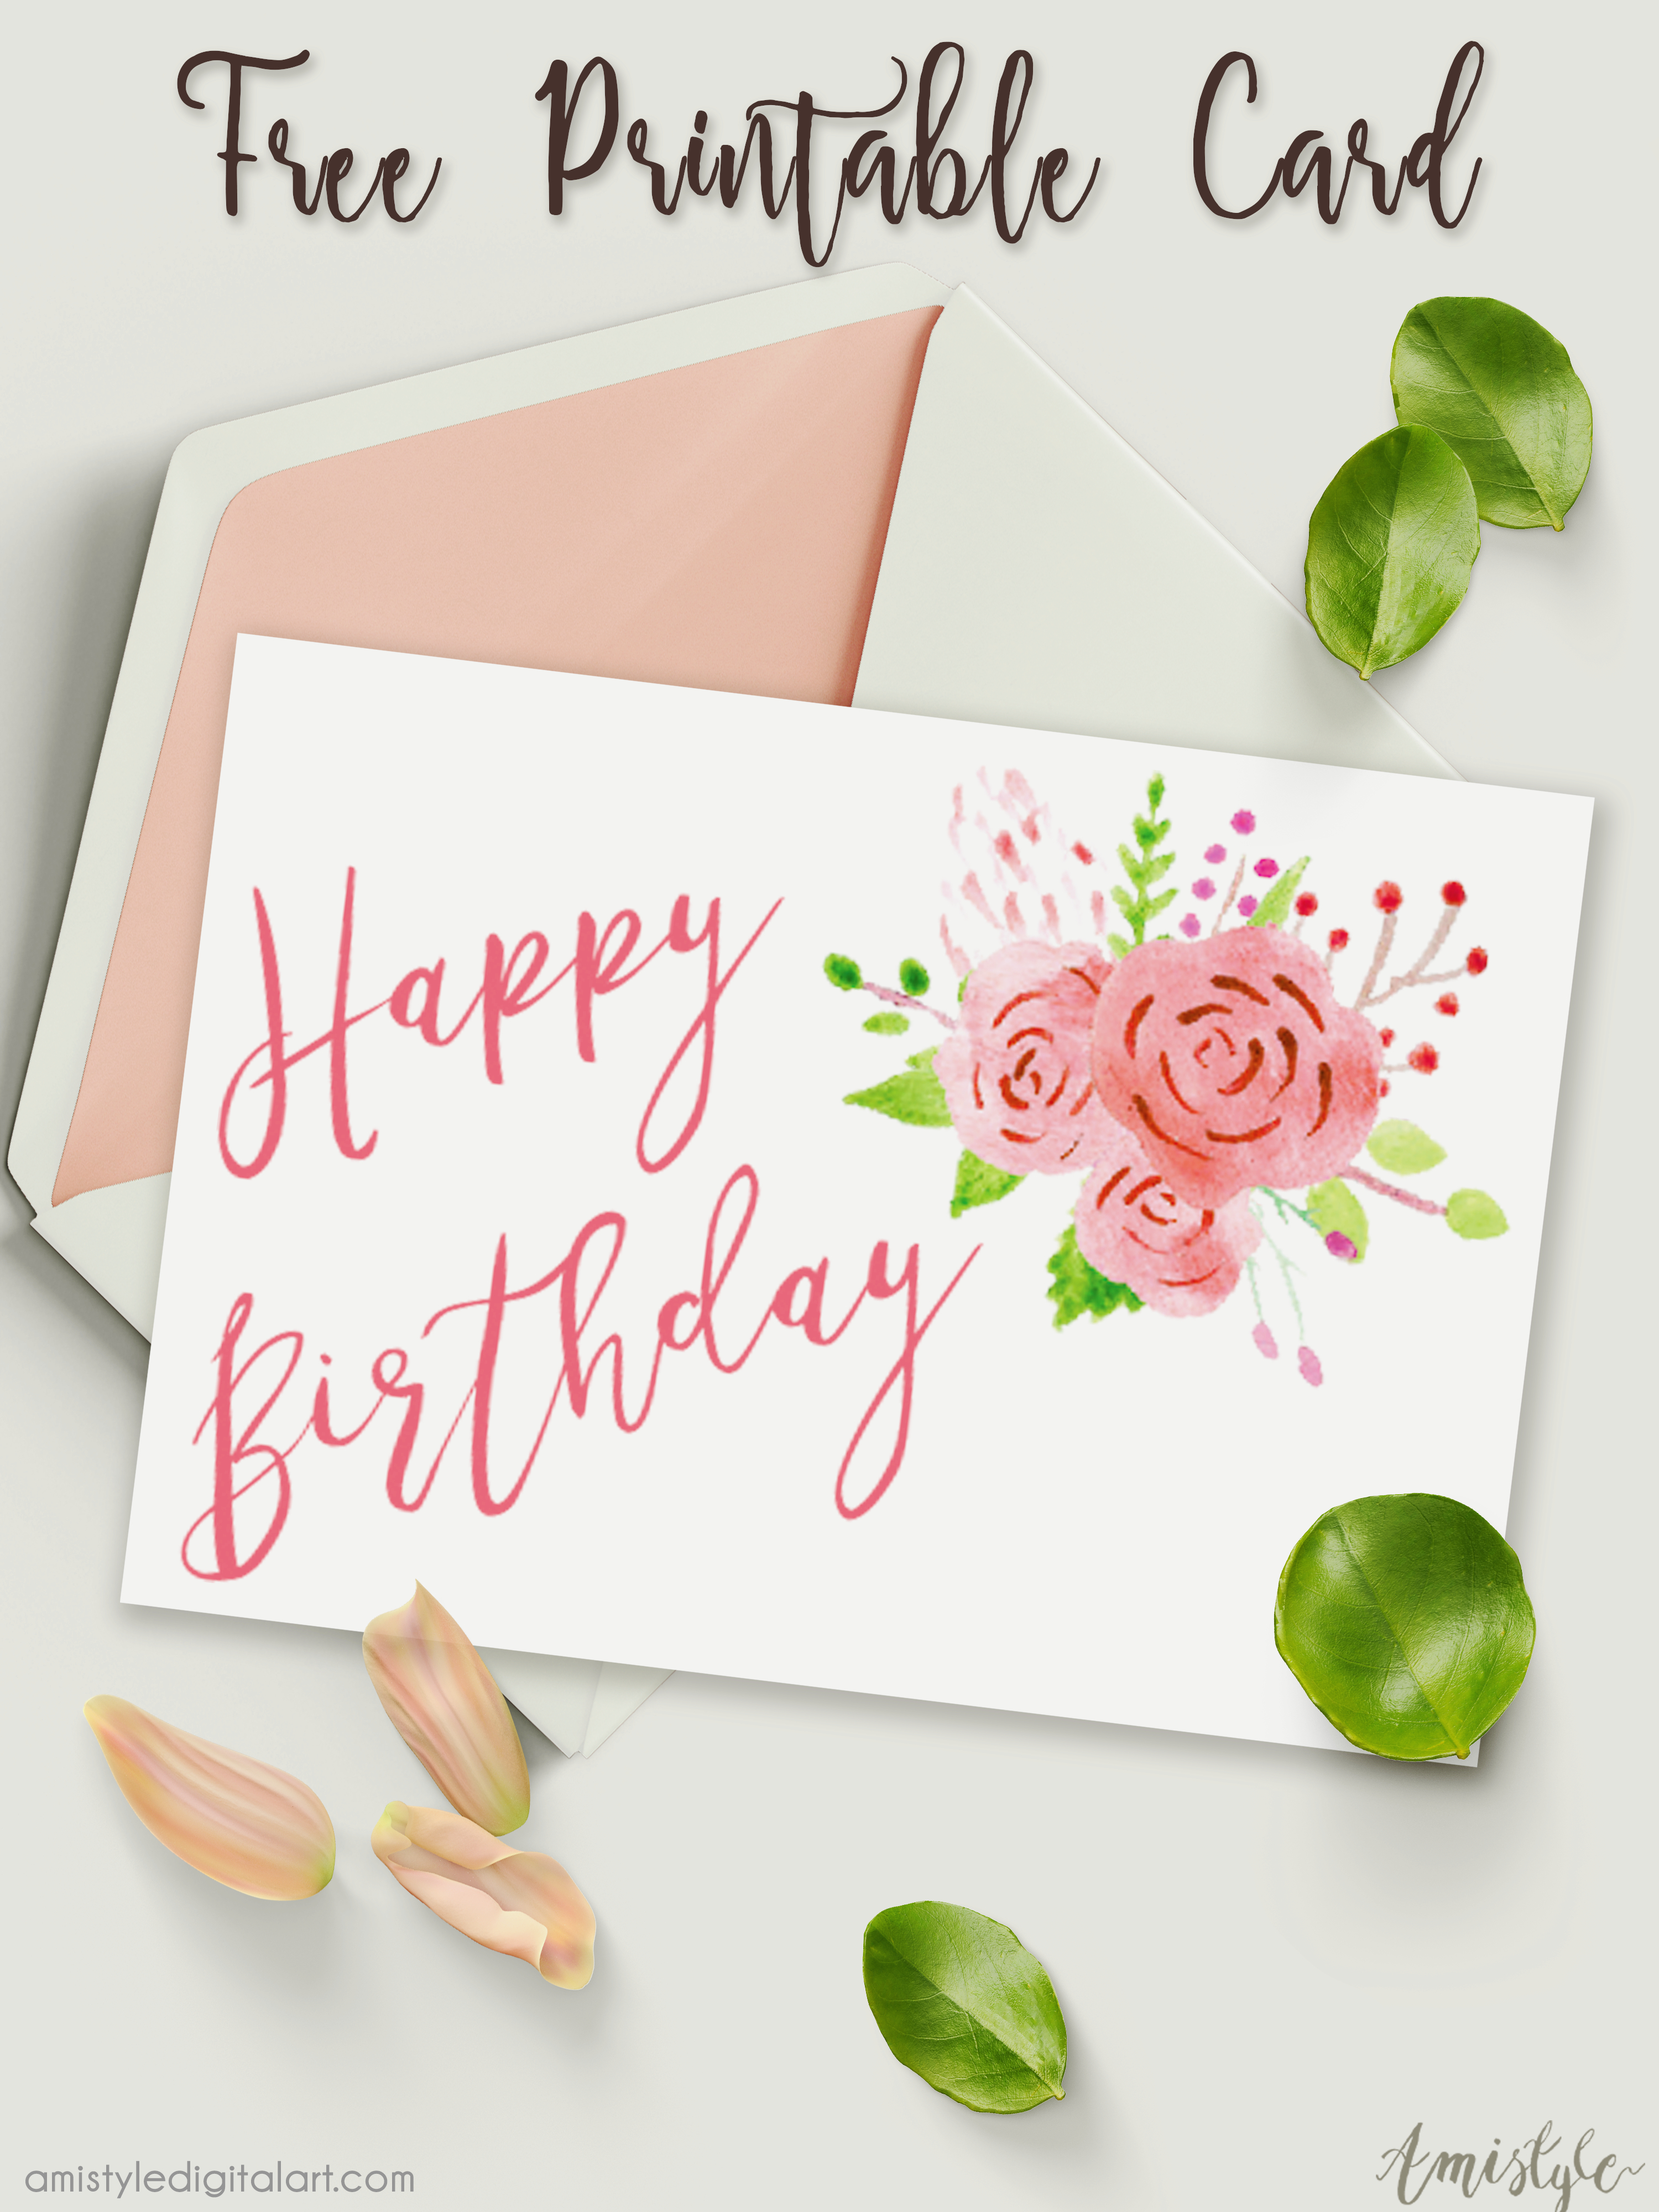 Free Printable Birthday Card With Watercolor Floral Design - Free Printable Birthday Cards For Mom